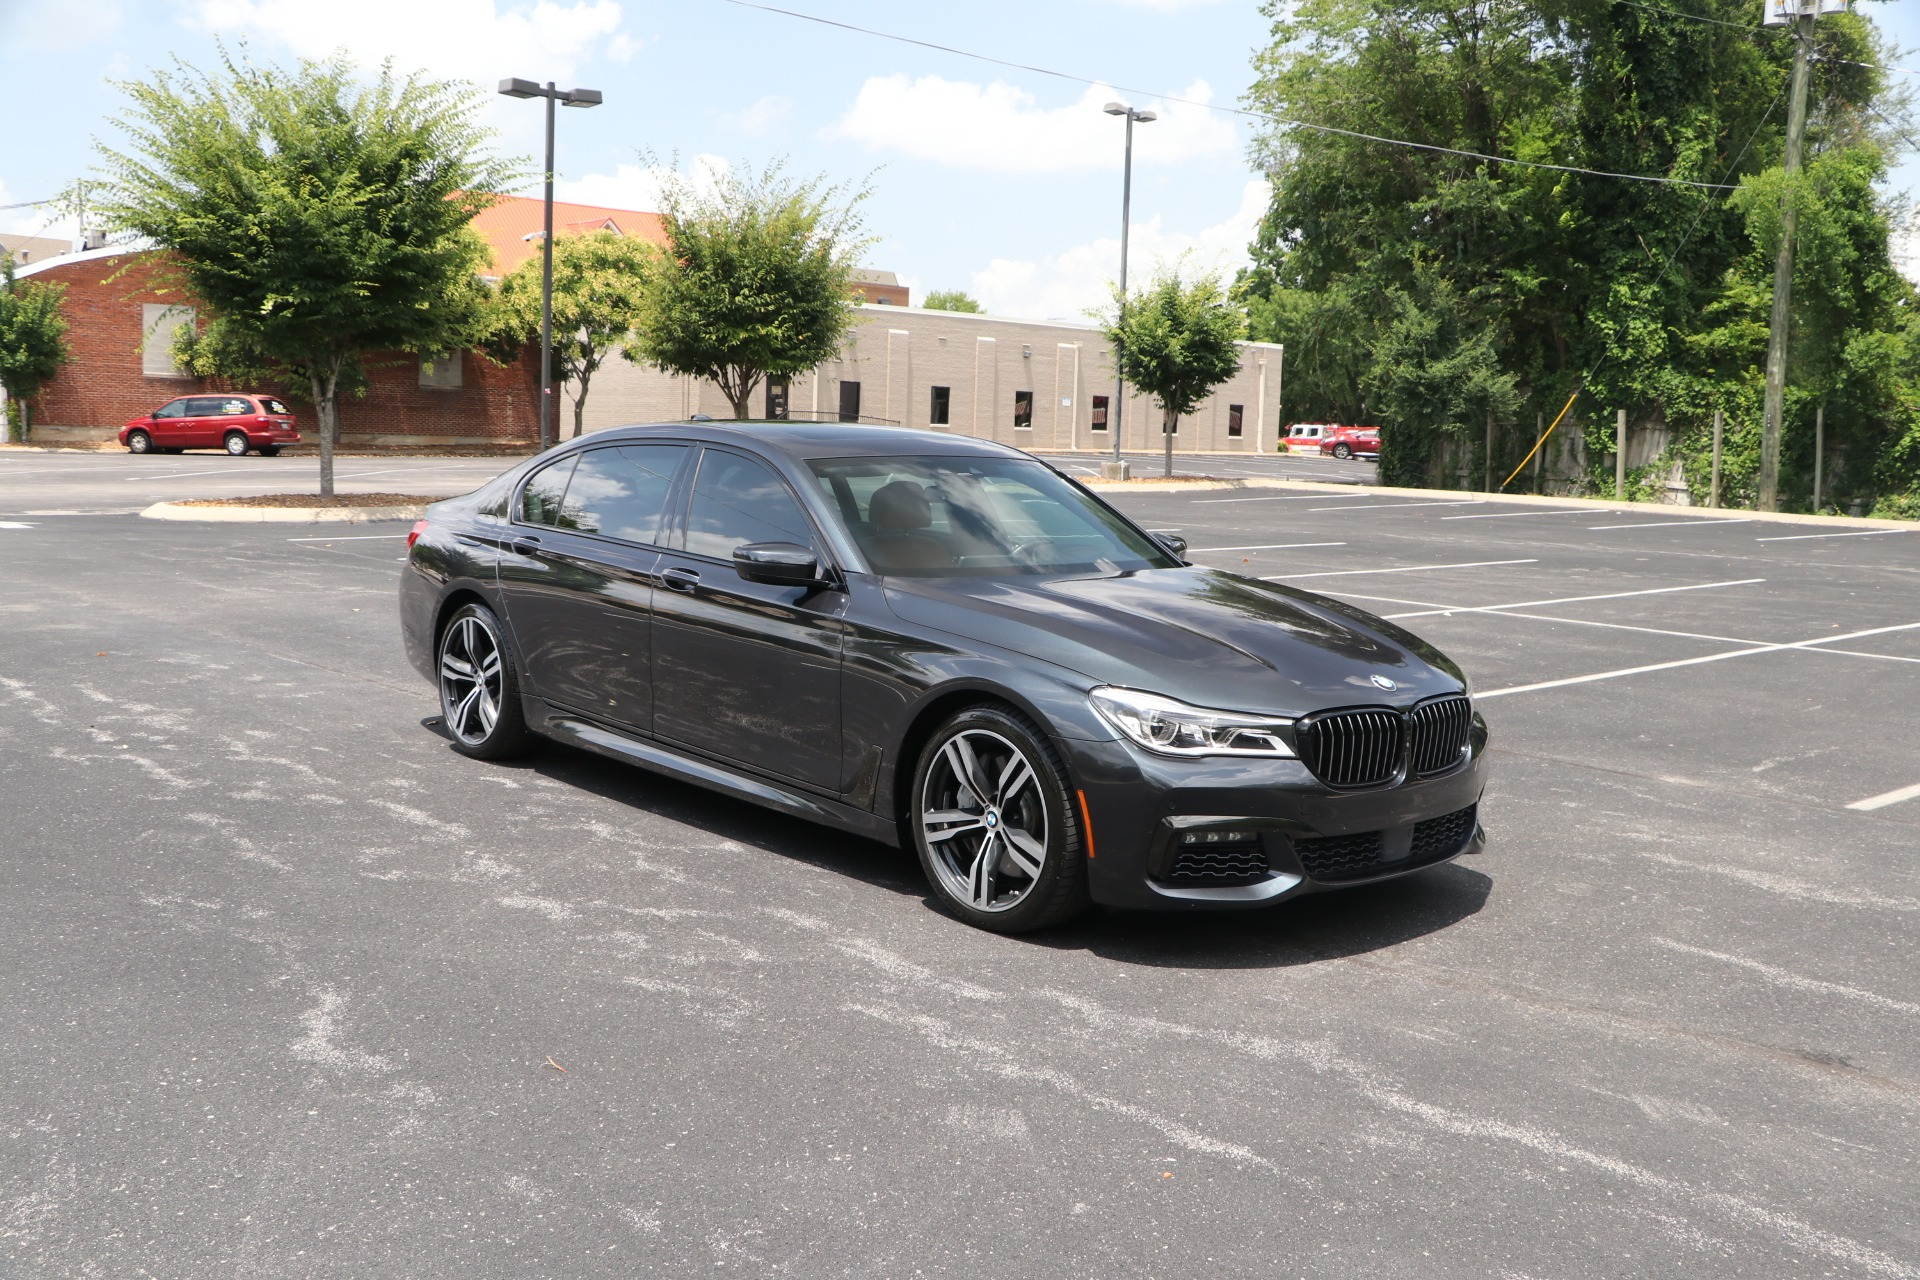 Used 2018 BMW 750I M SPORT EXECUTIVE W/NAV for sale $58,950 at Auto Collection in Murfreesboro TN 37130 1